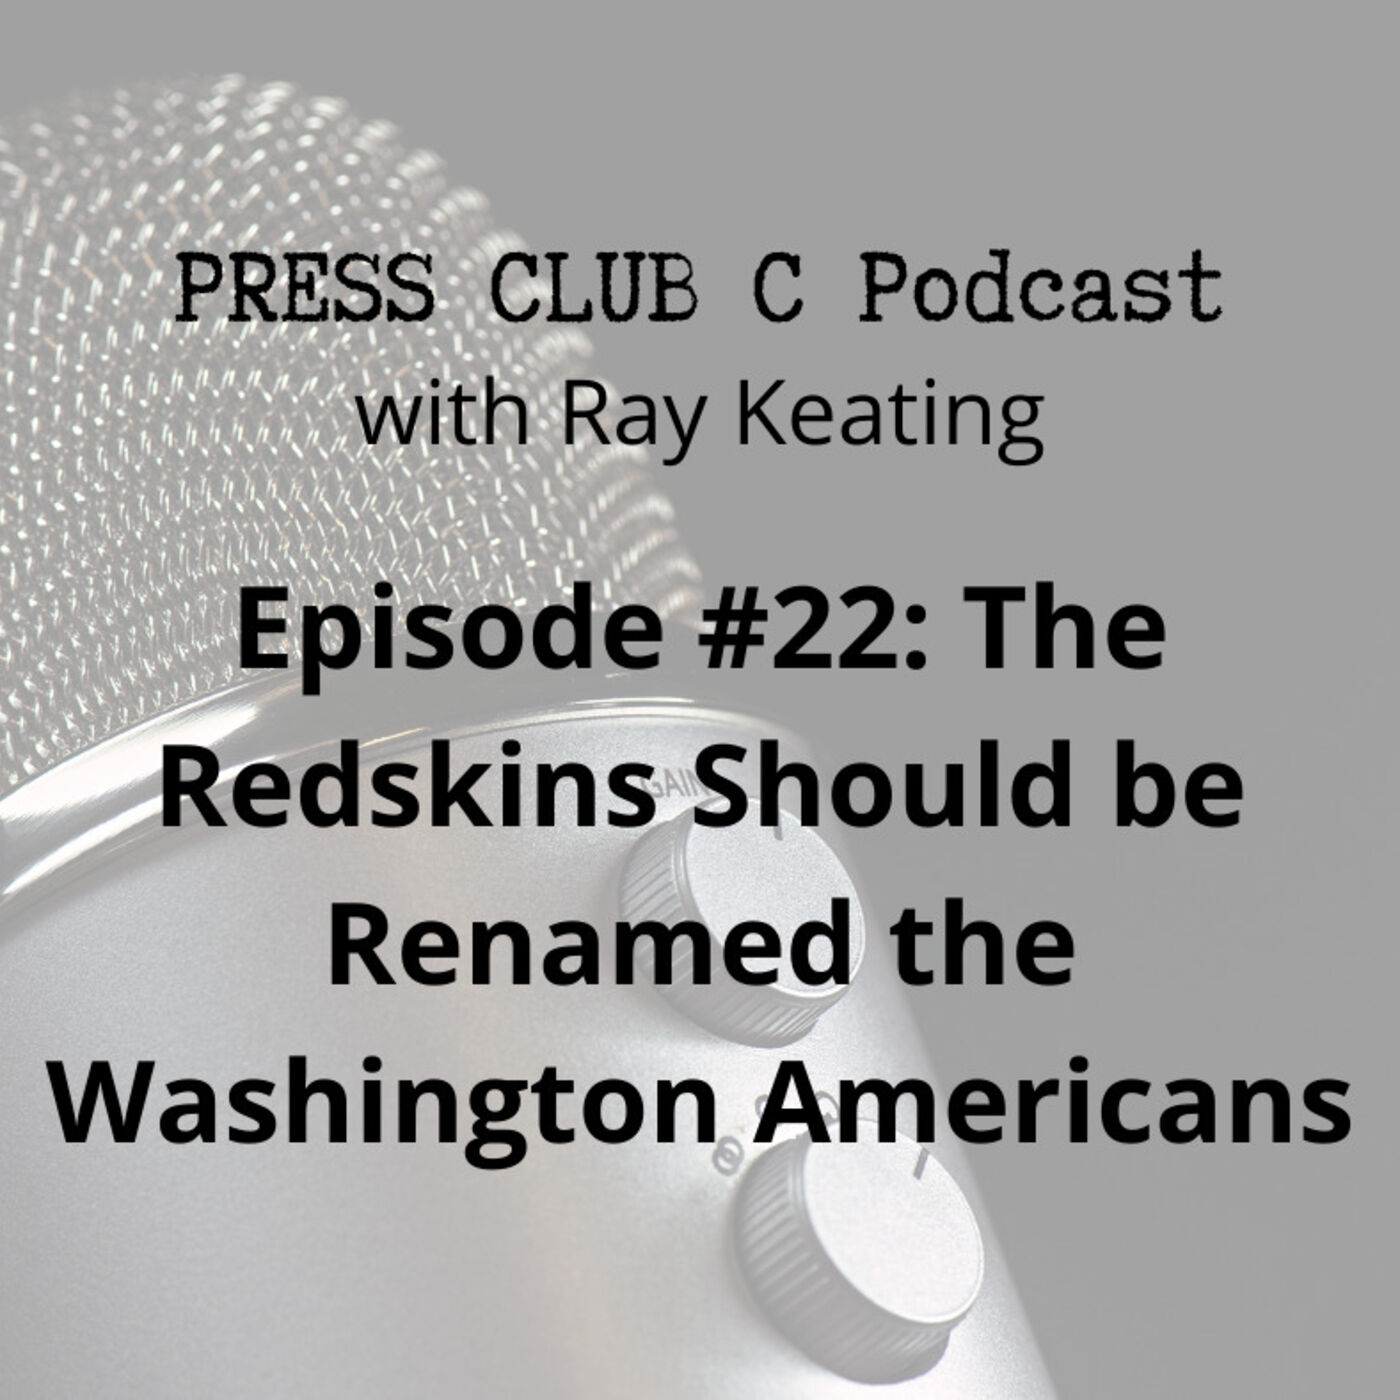 Episode #22: The Redskins Should be Renamed the Washington Americans